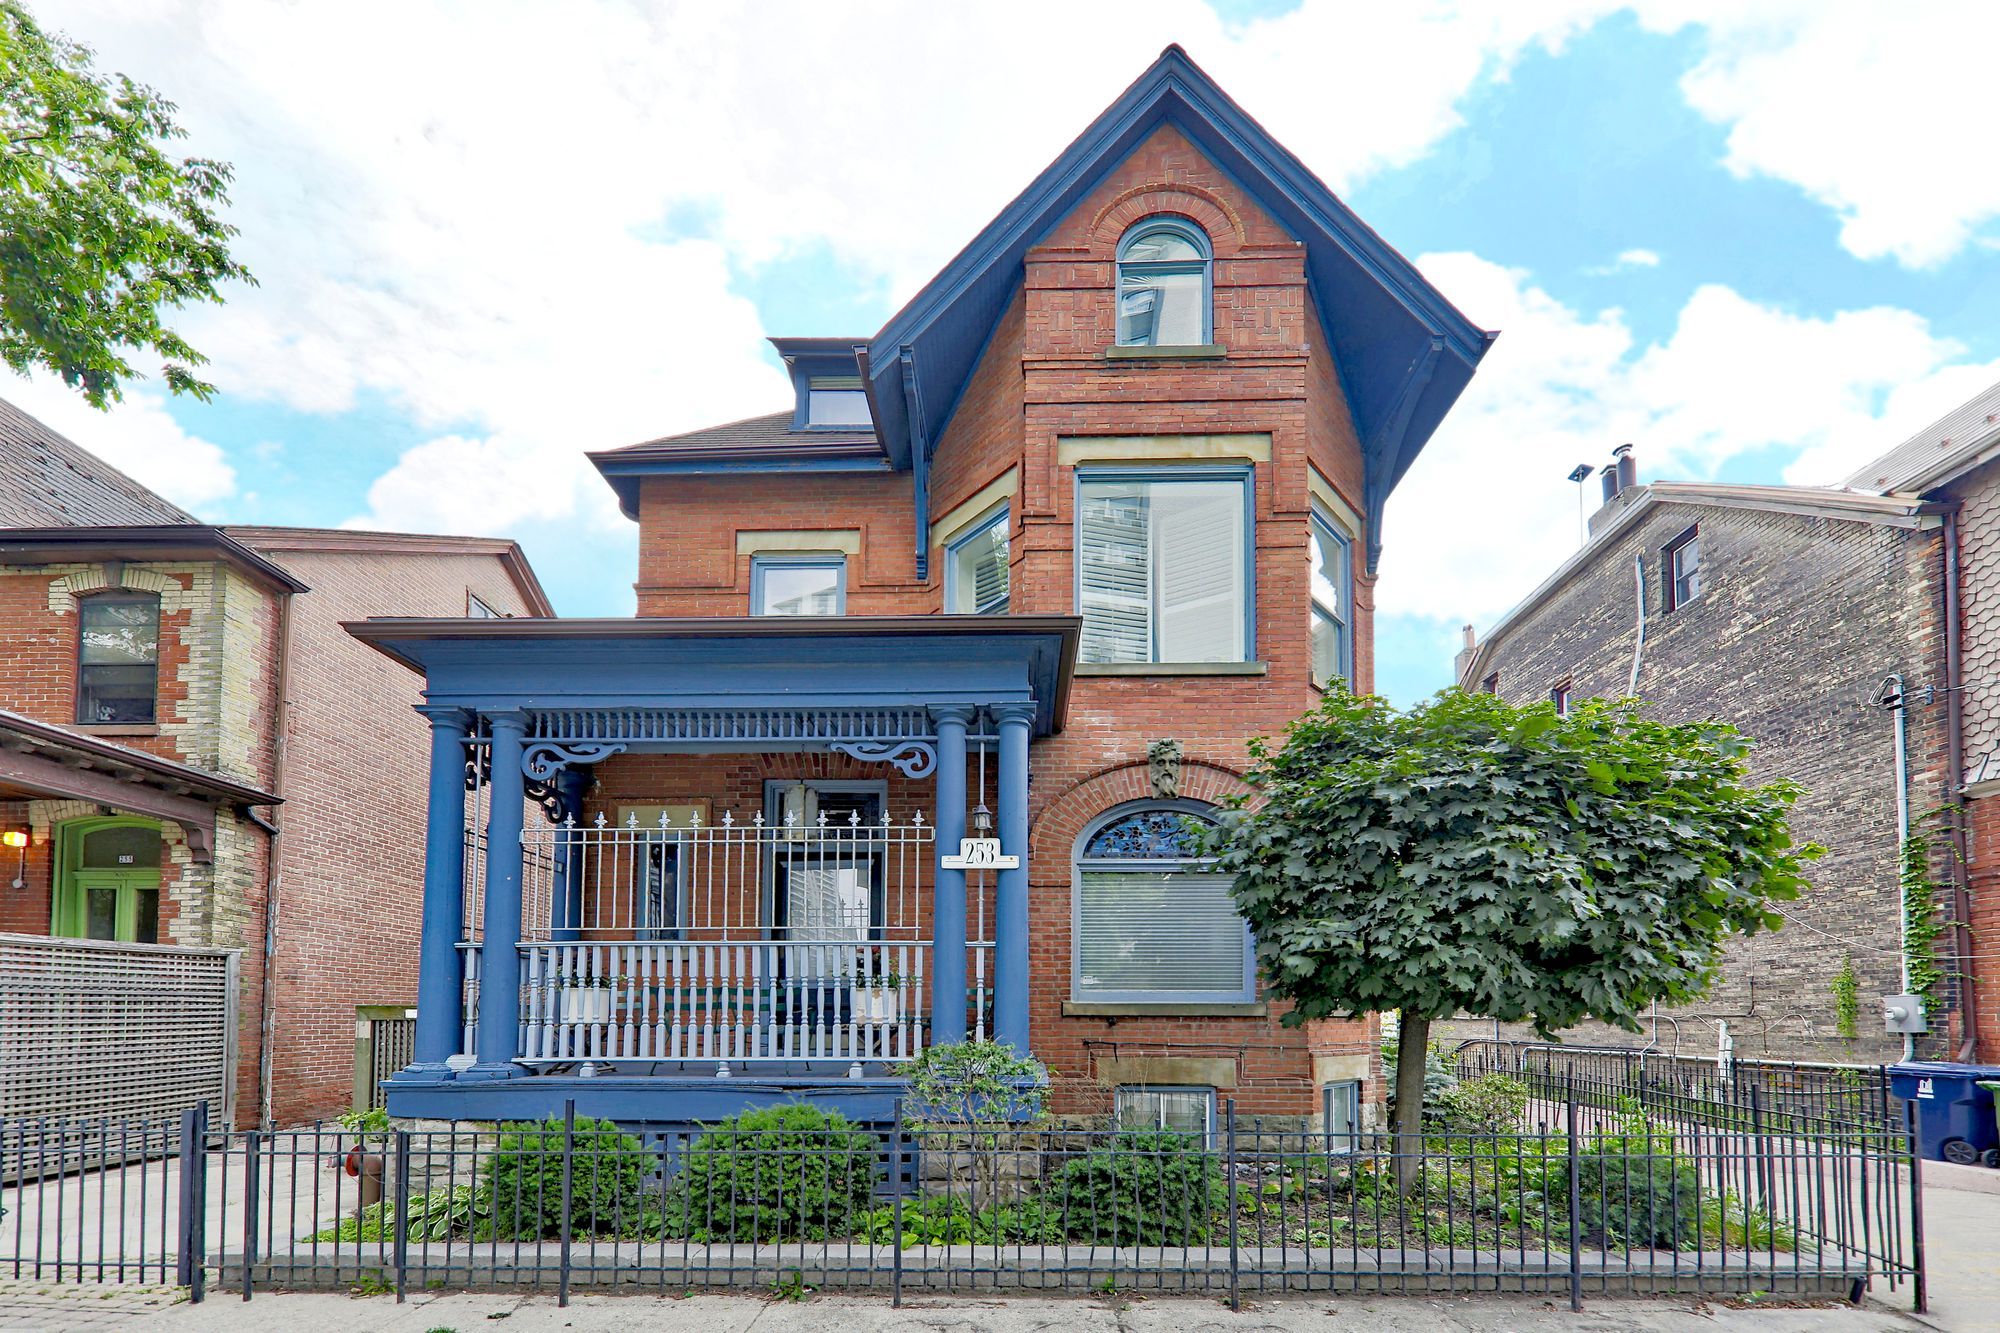 253 Wellesley St E. This condo townhouse at 253 Wellesley is located in  Downtown, Toronto - image #2 of 4 by Strata.ca